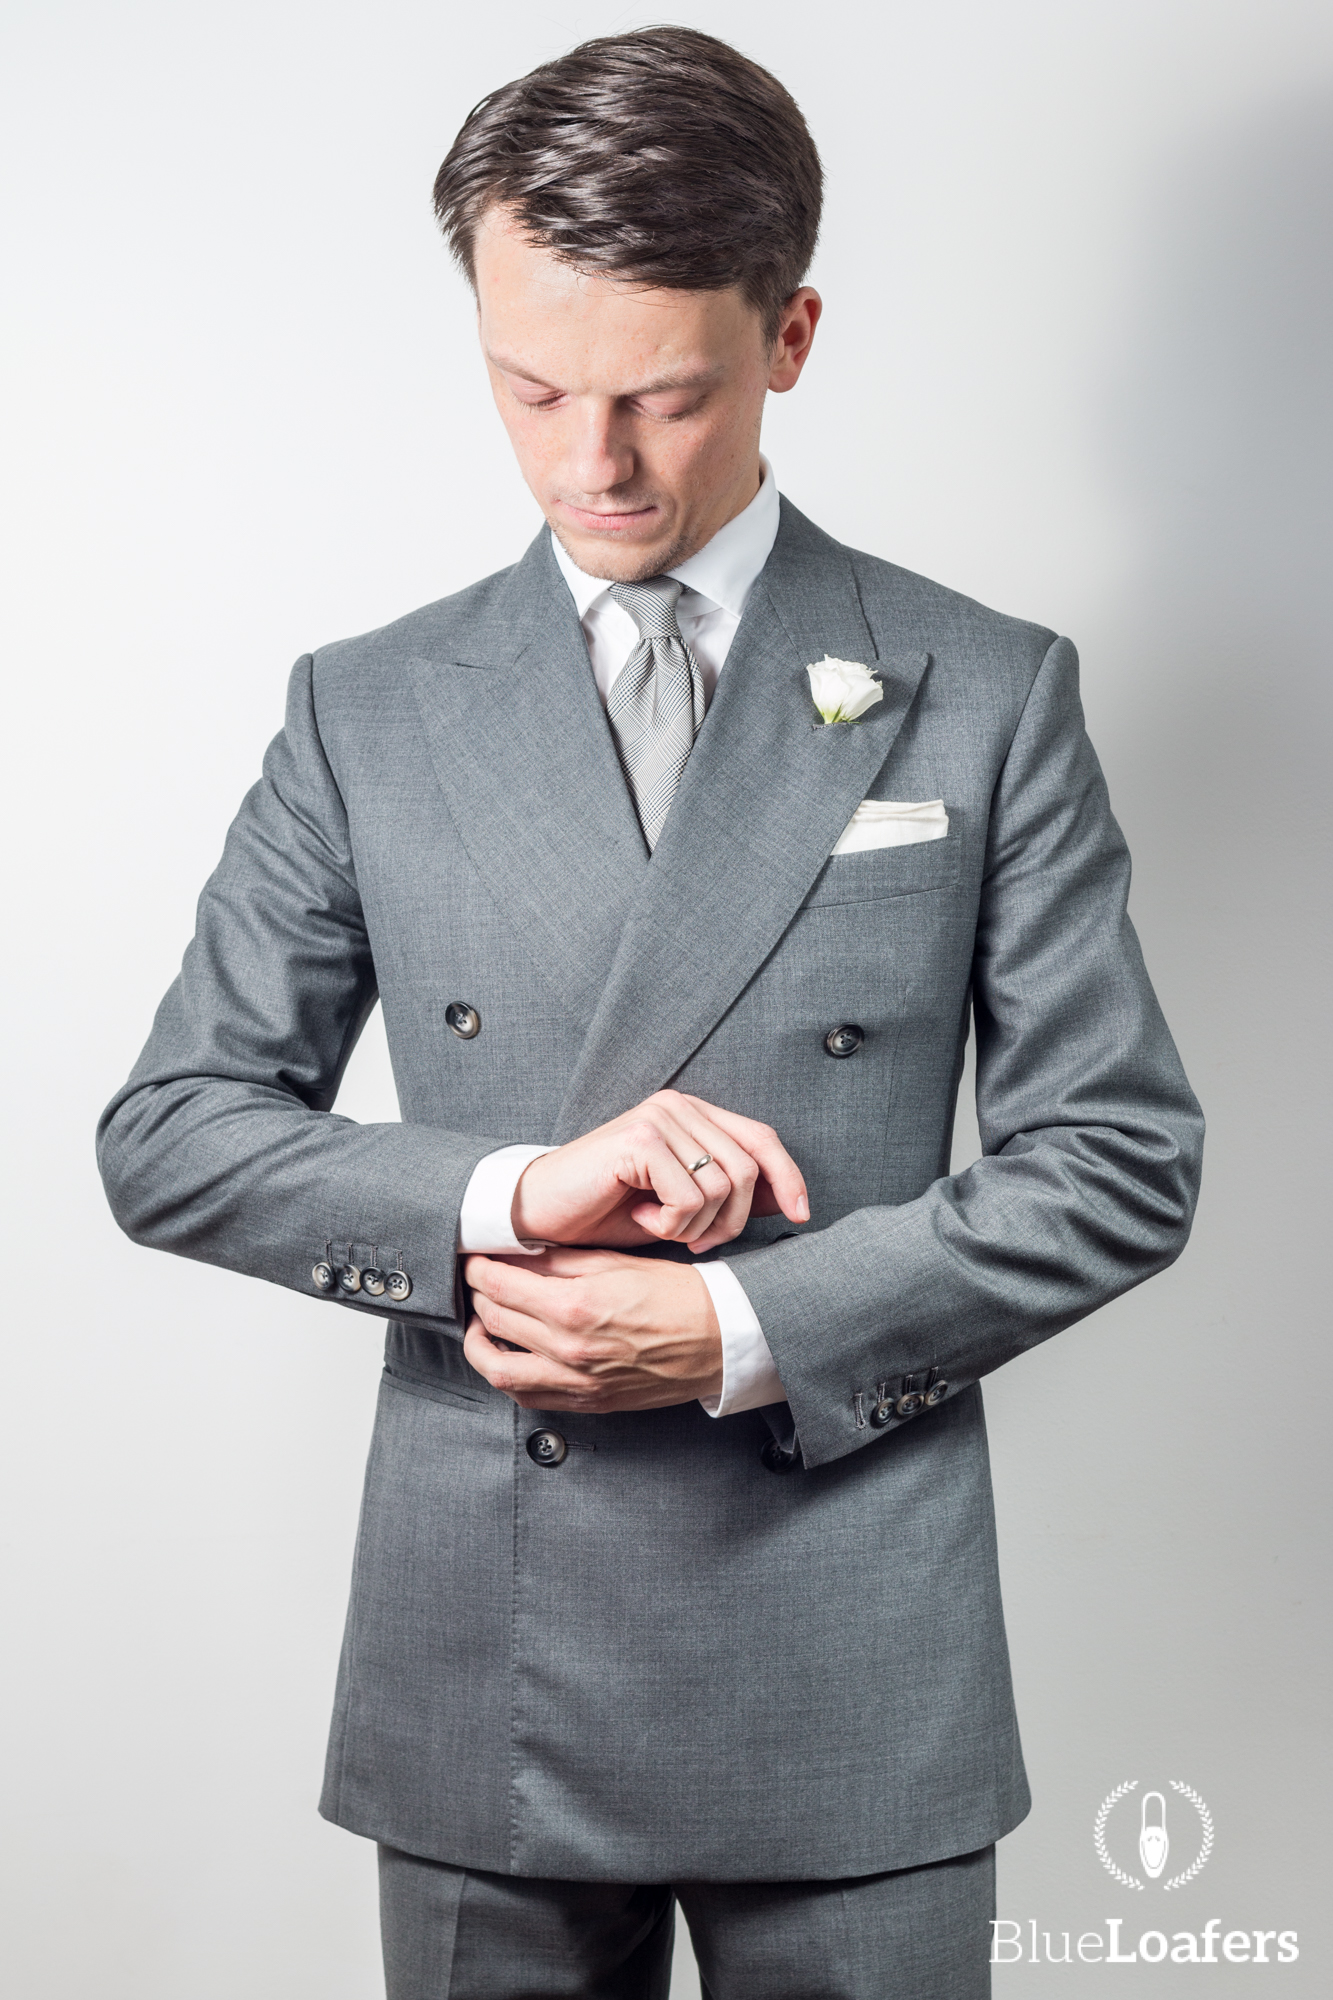 Old Fashioned Dark Gray Suit Wedding Festooning - All Wedding ...